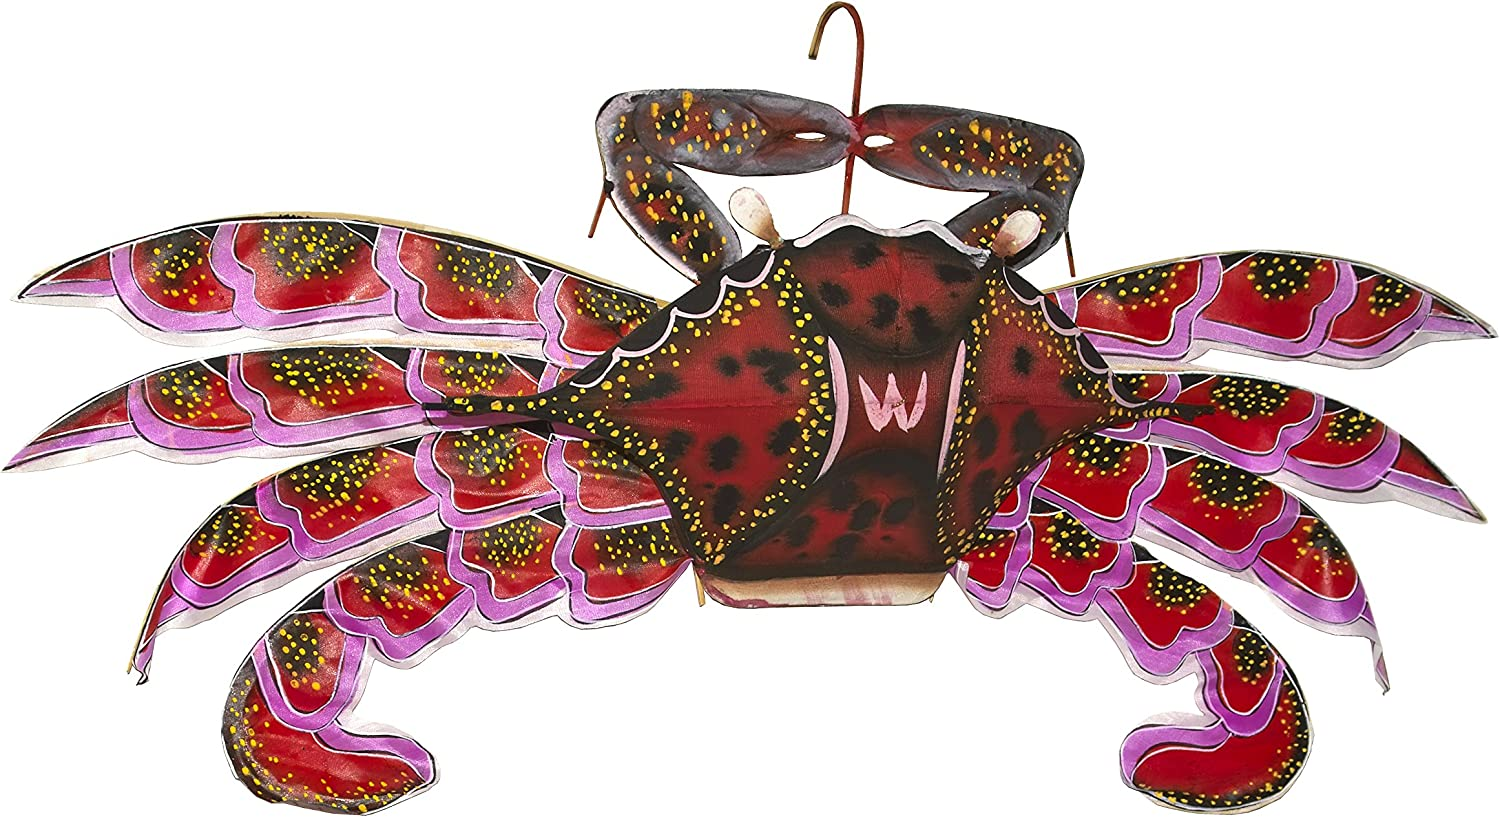 Hand Outstanding Crafted Red Crab Challenge the lowest price of Japan ☆ with Kite Box Gift